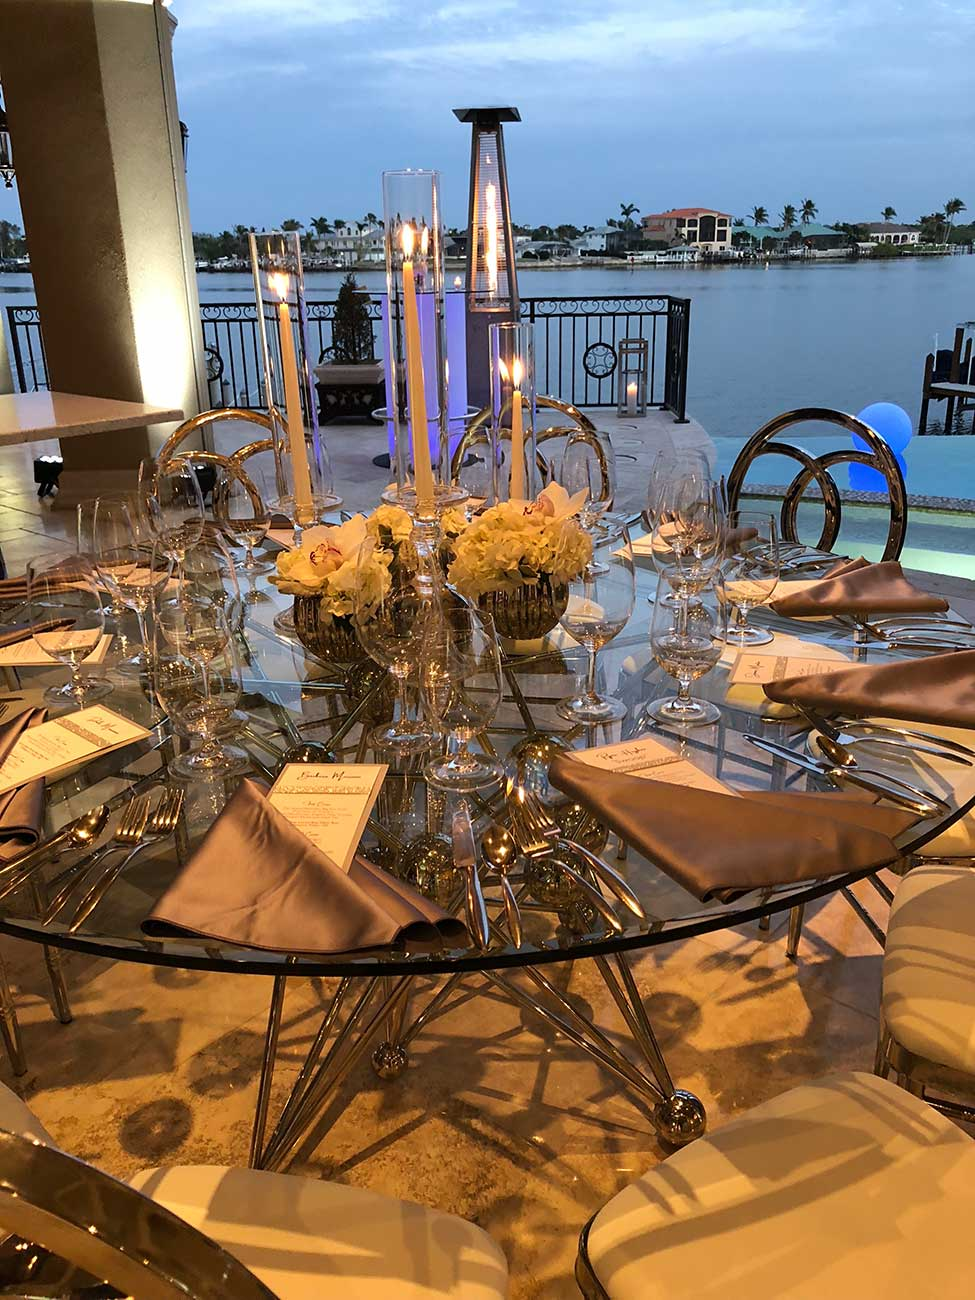 Tabletop design set on a round glass table overlooking a bay